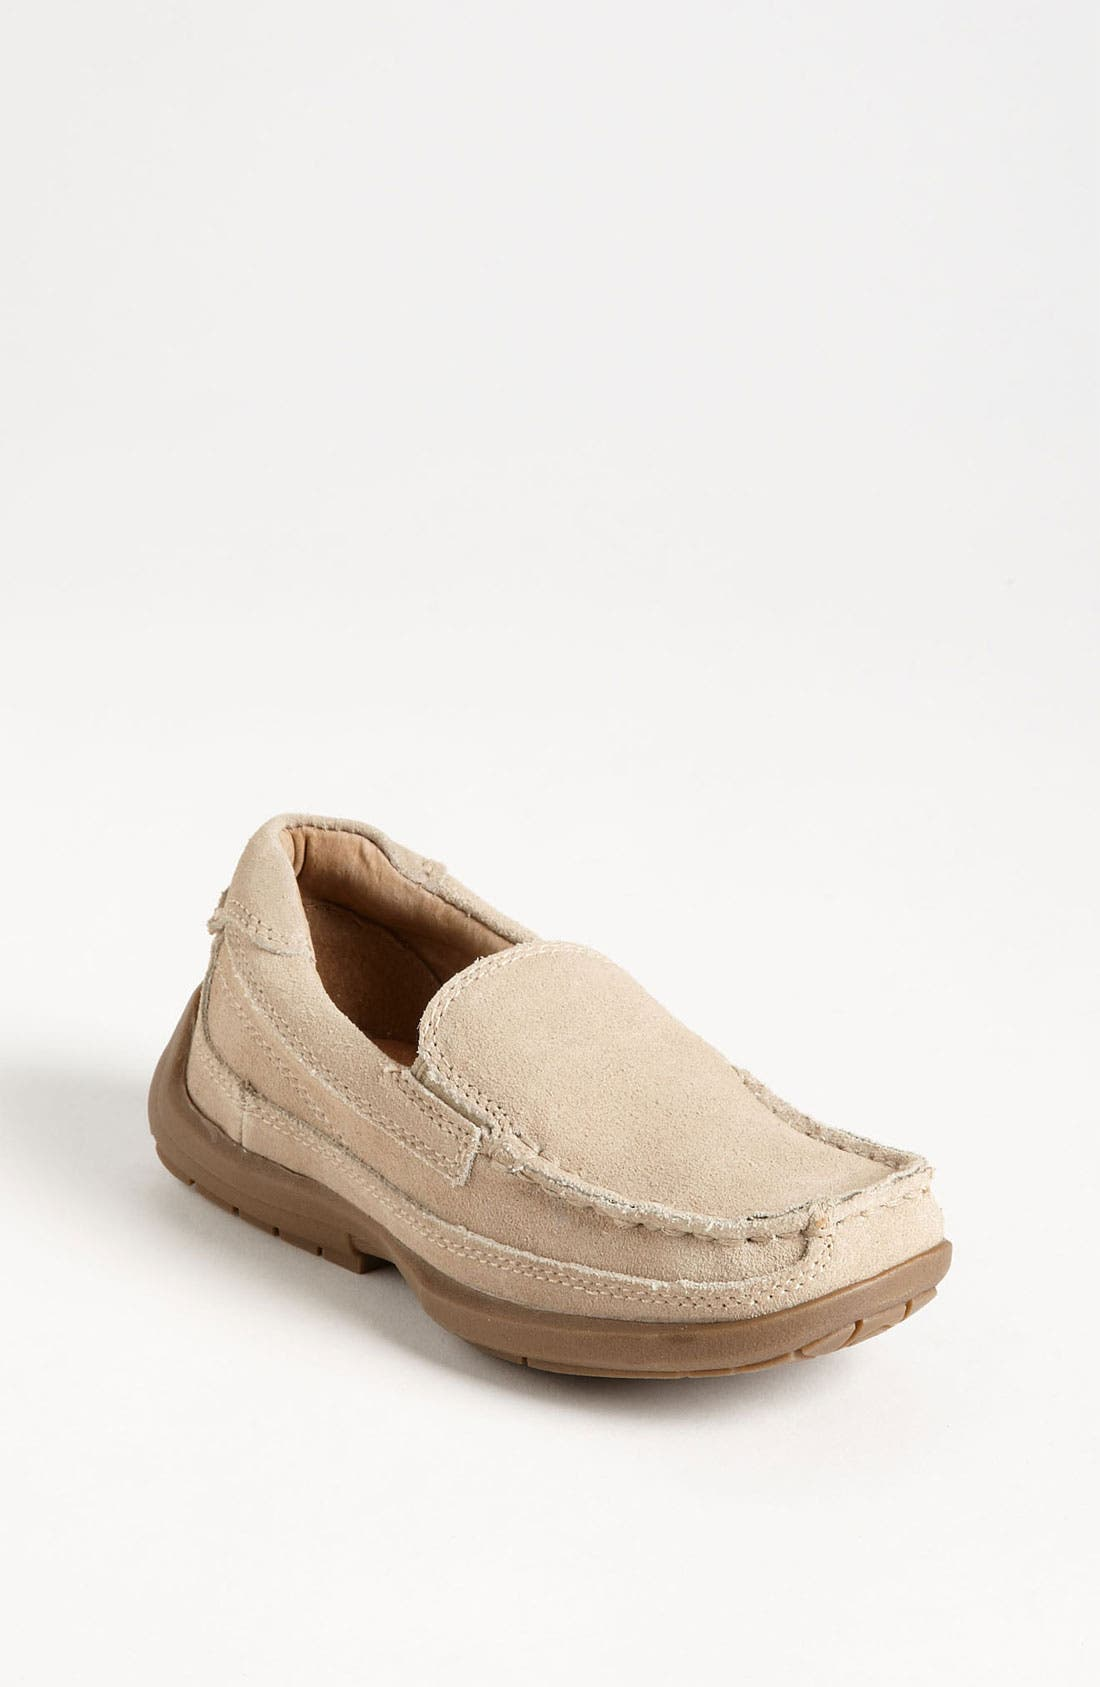 Alternate Image 1 Selected - Florsheim 'Nowles Jr.' Slip-On (Toddler, Little Kid & Big Kid)